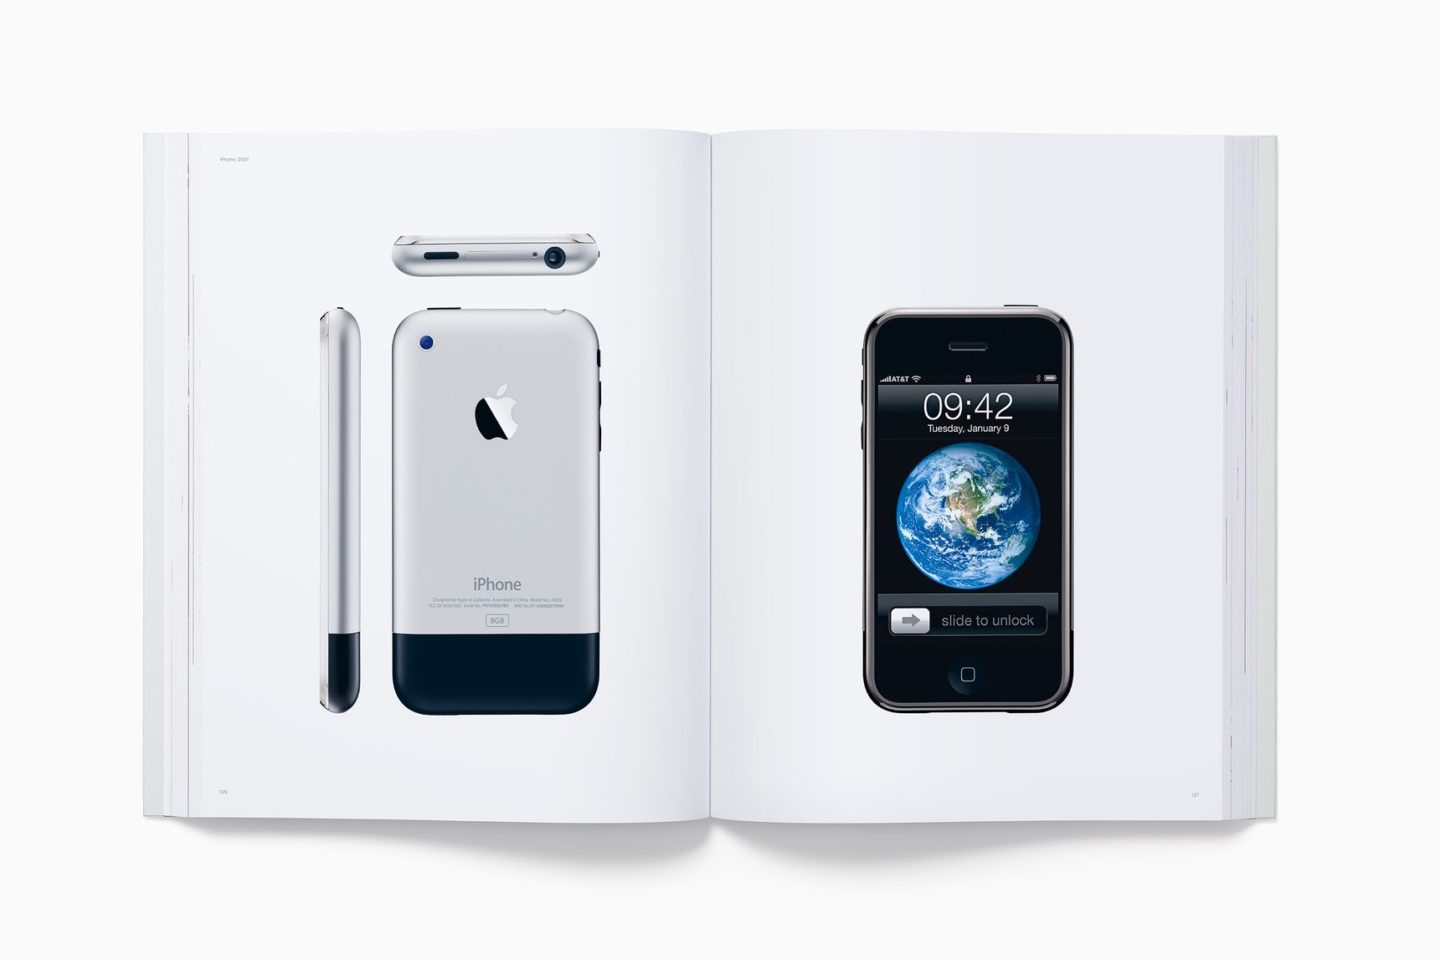 designed by apple in california 1.0